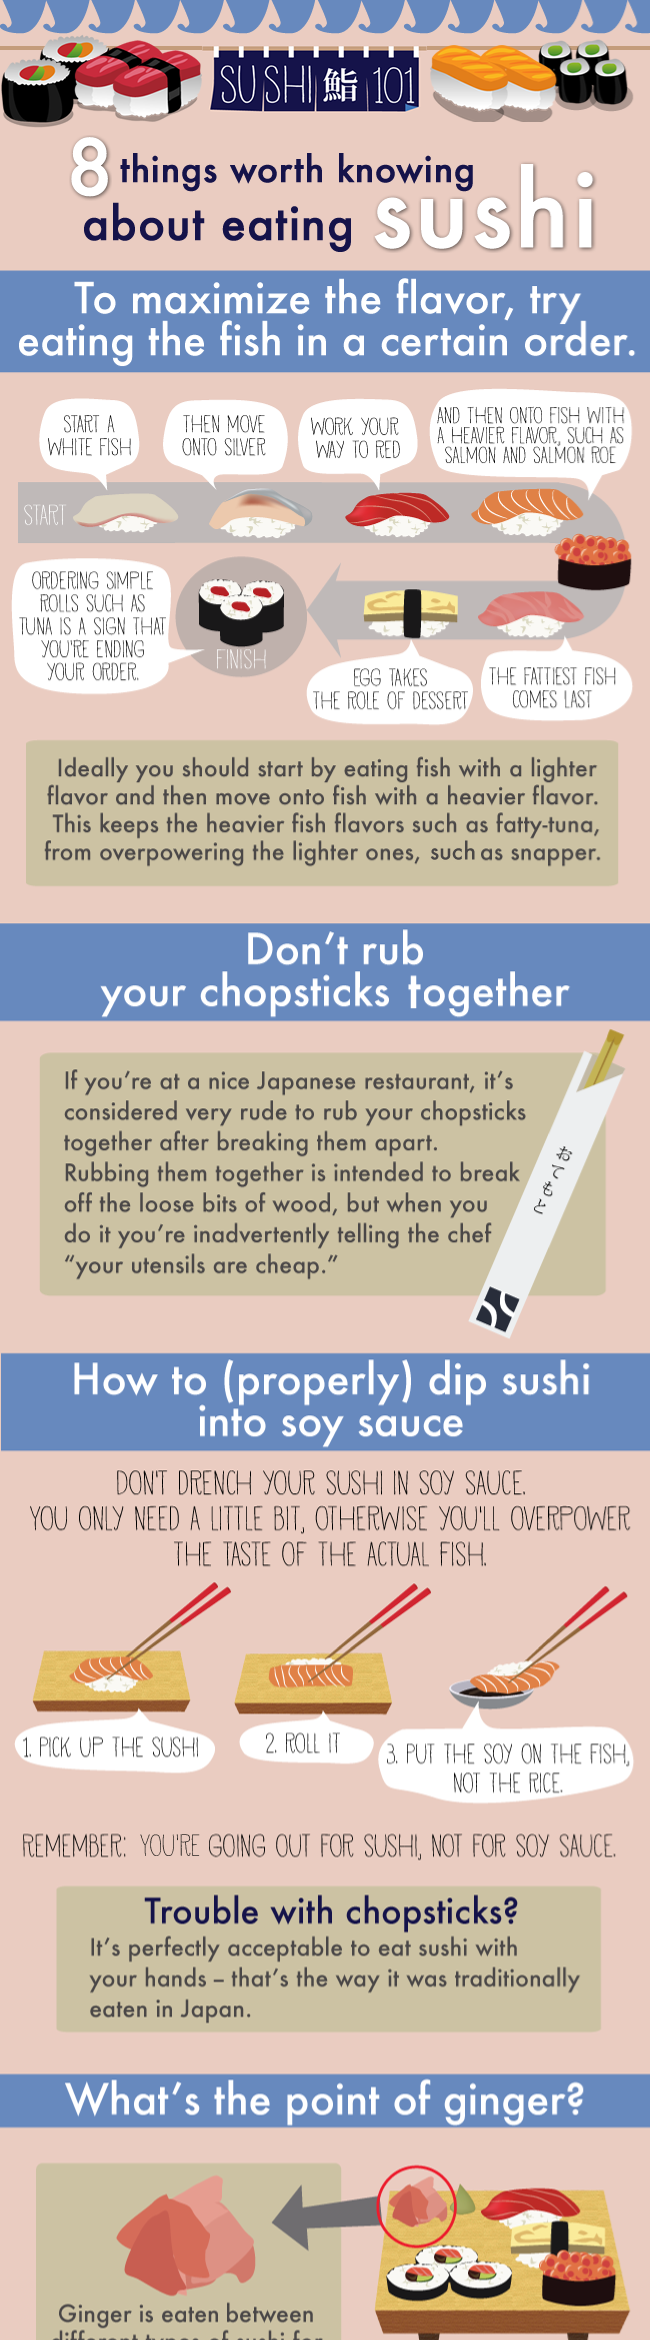 eating sushi infographic